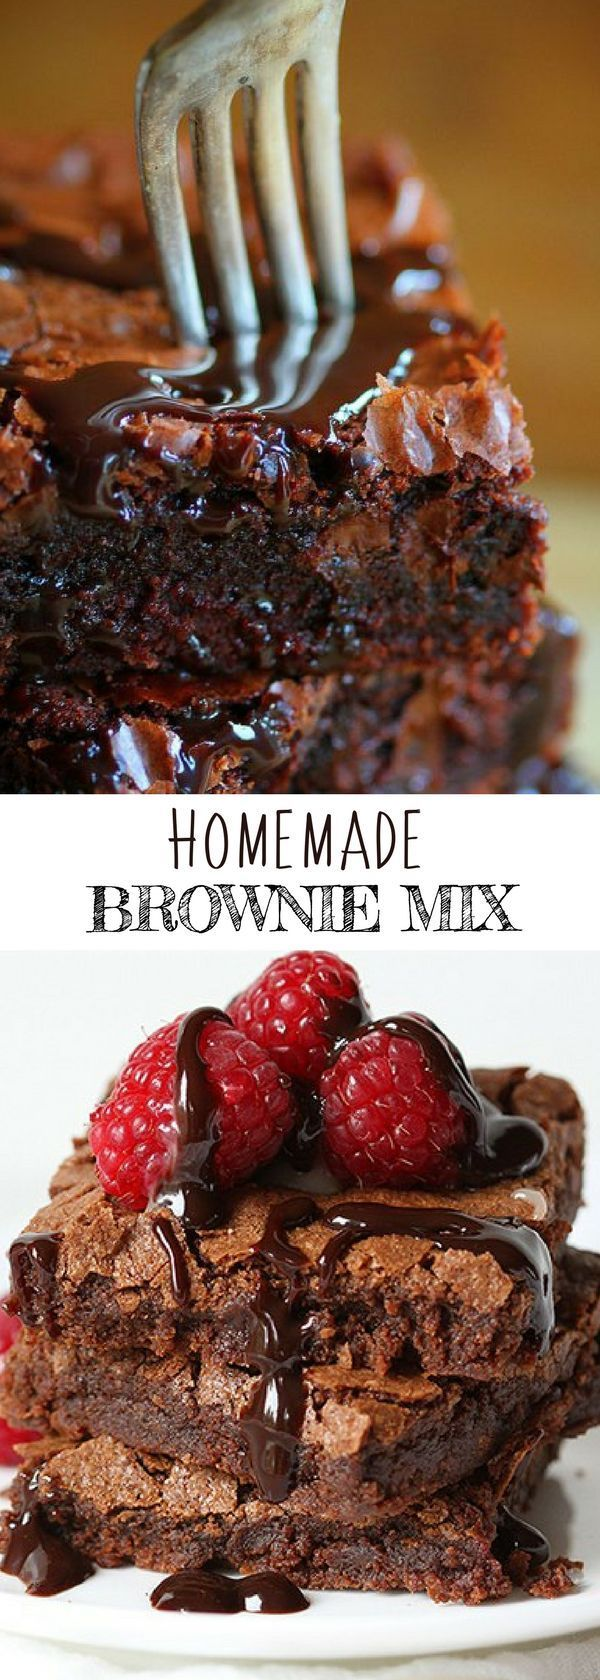 HOMEMADE BROWNIE MIX | Dessert Recipes for Kids | #iambaker